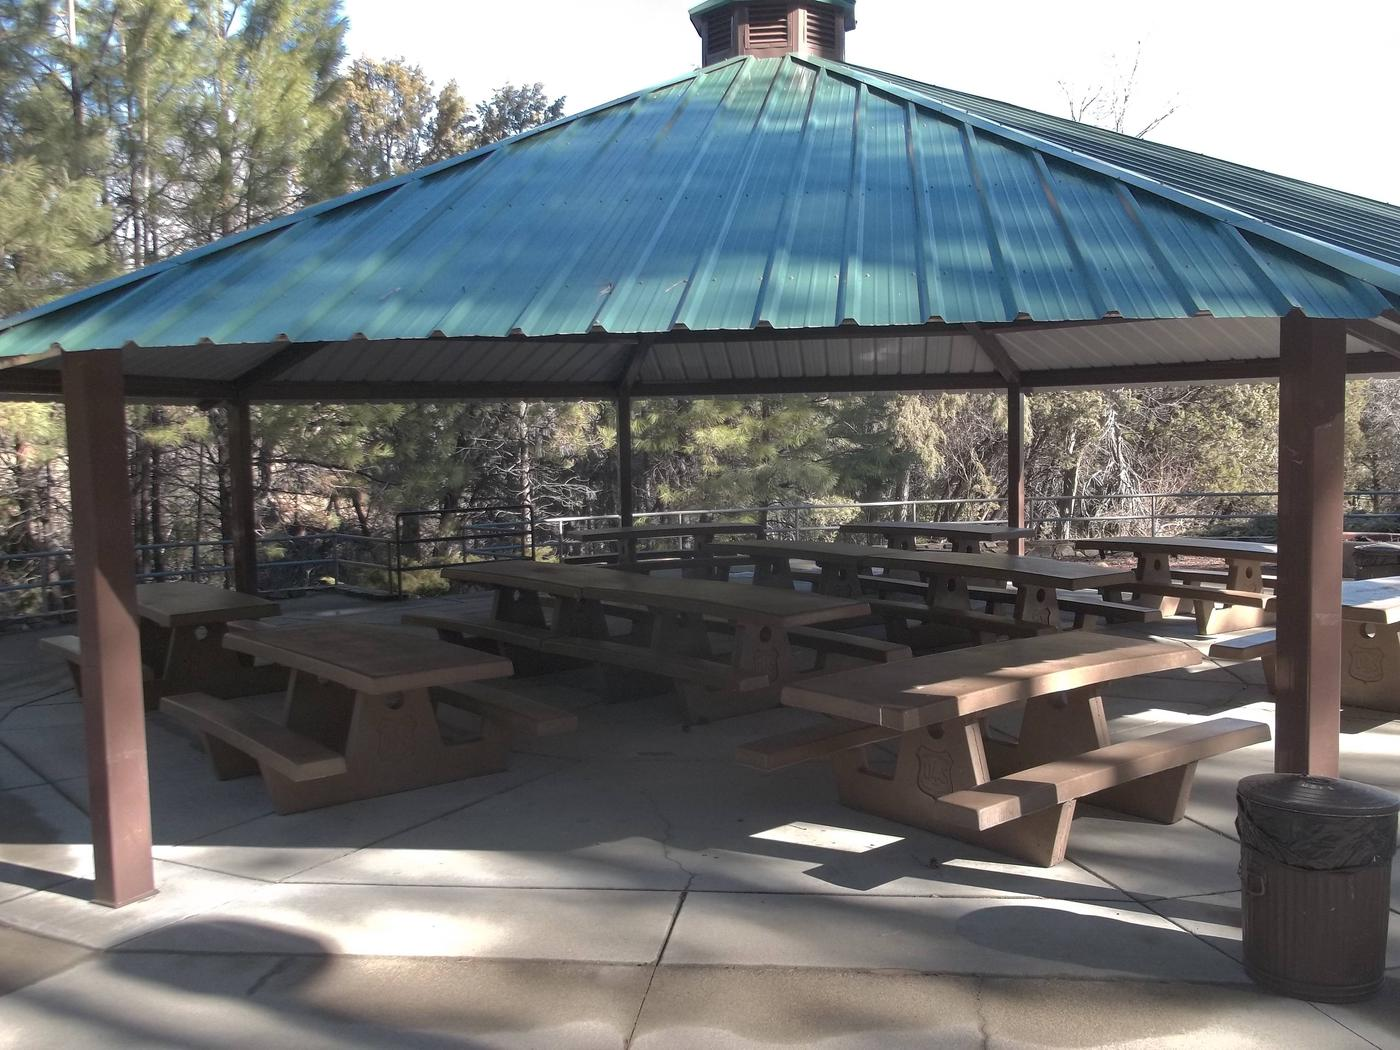 THUMB BUTTE GROUP PICNIC SITECovered picnic area with benches.